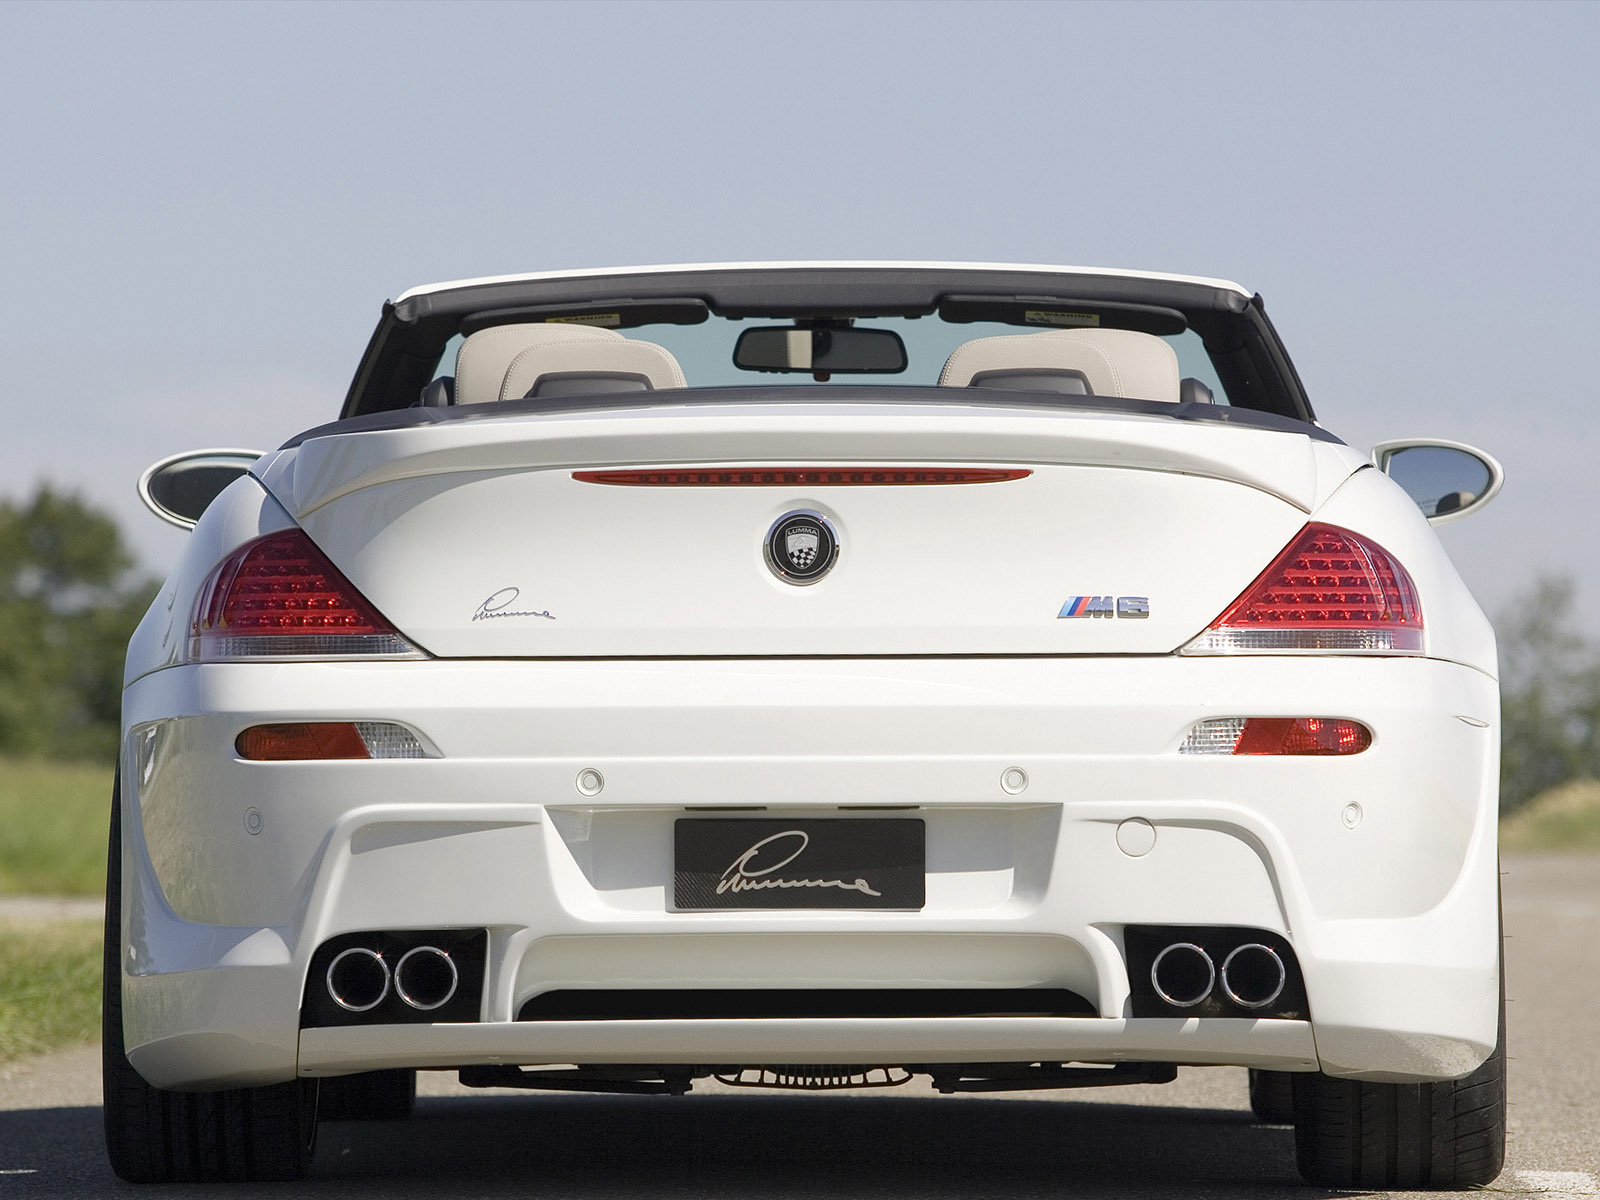 2007 Bmw M6 cabrio – pictures, information and specs - Auto-Database.com